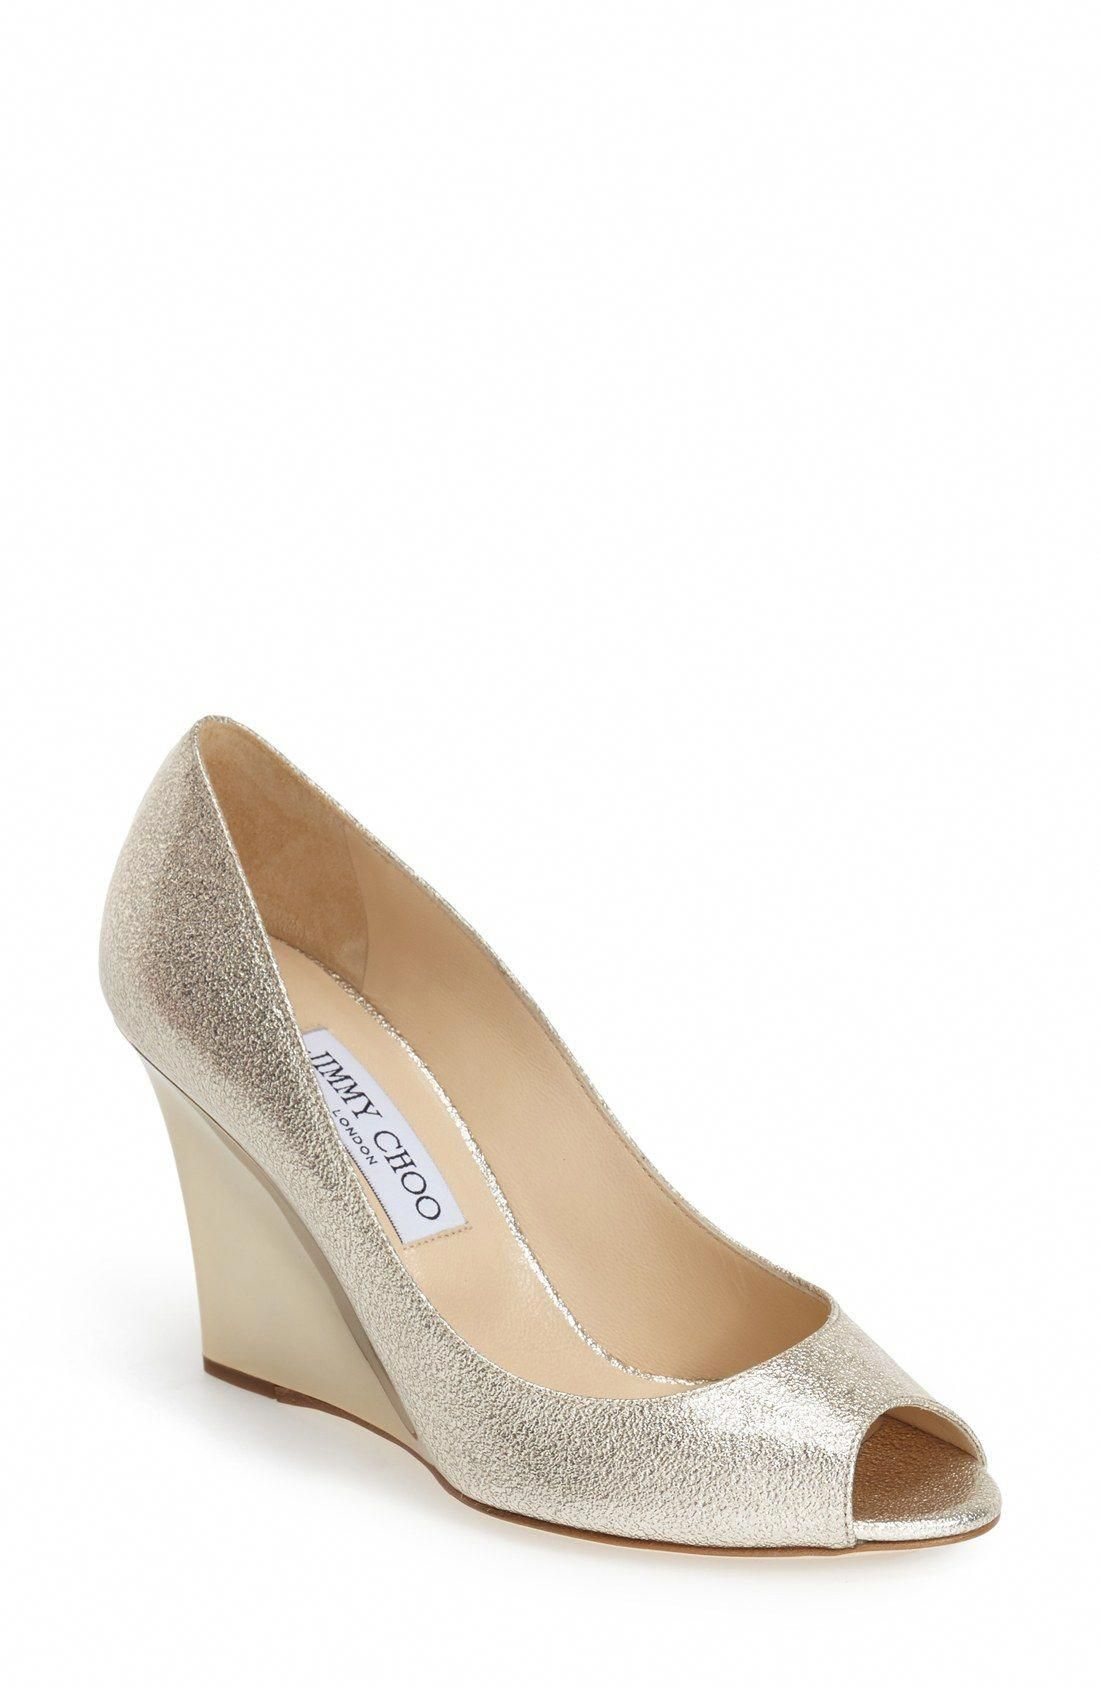 cef7dea020a Jimmy Choo  Baxen  Wedge Peep Toe Pump (Women)  JimmyChoo Peep Toe